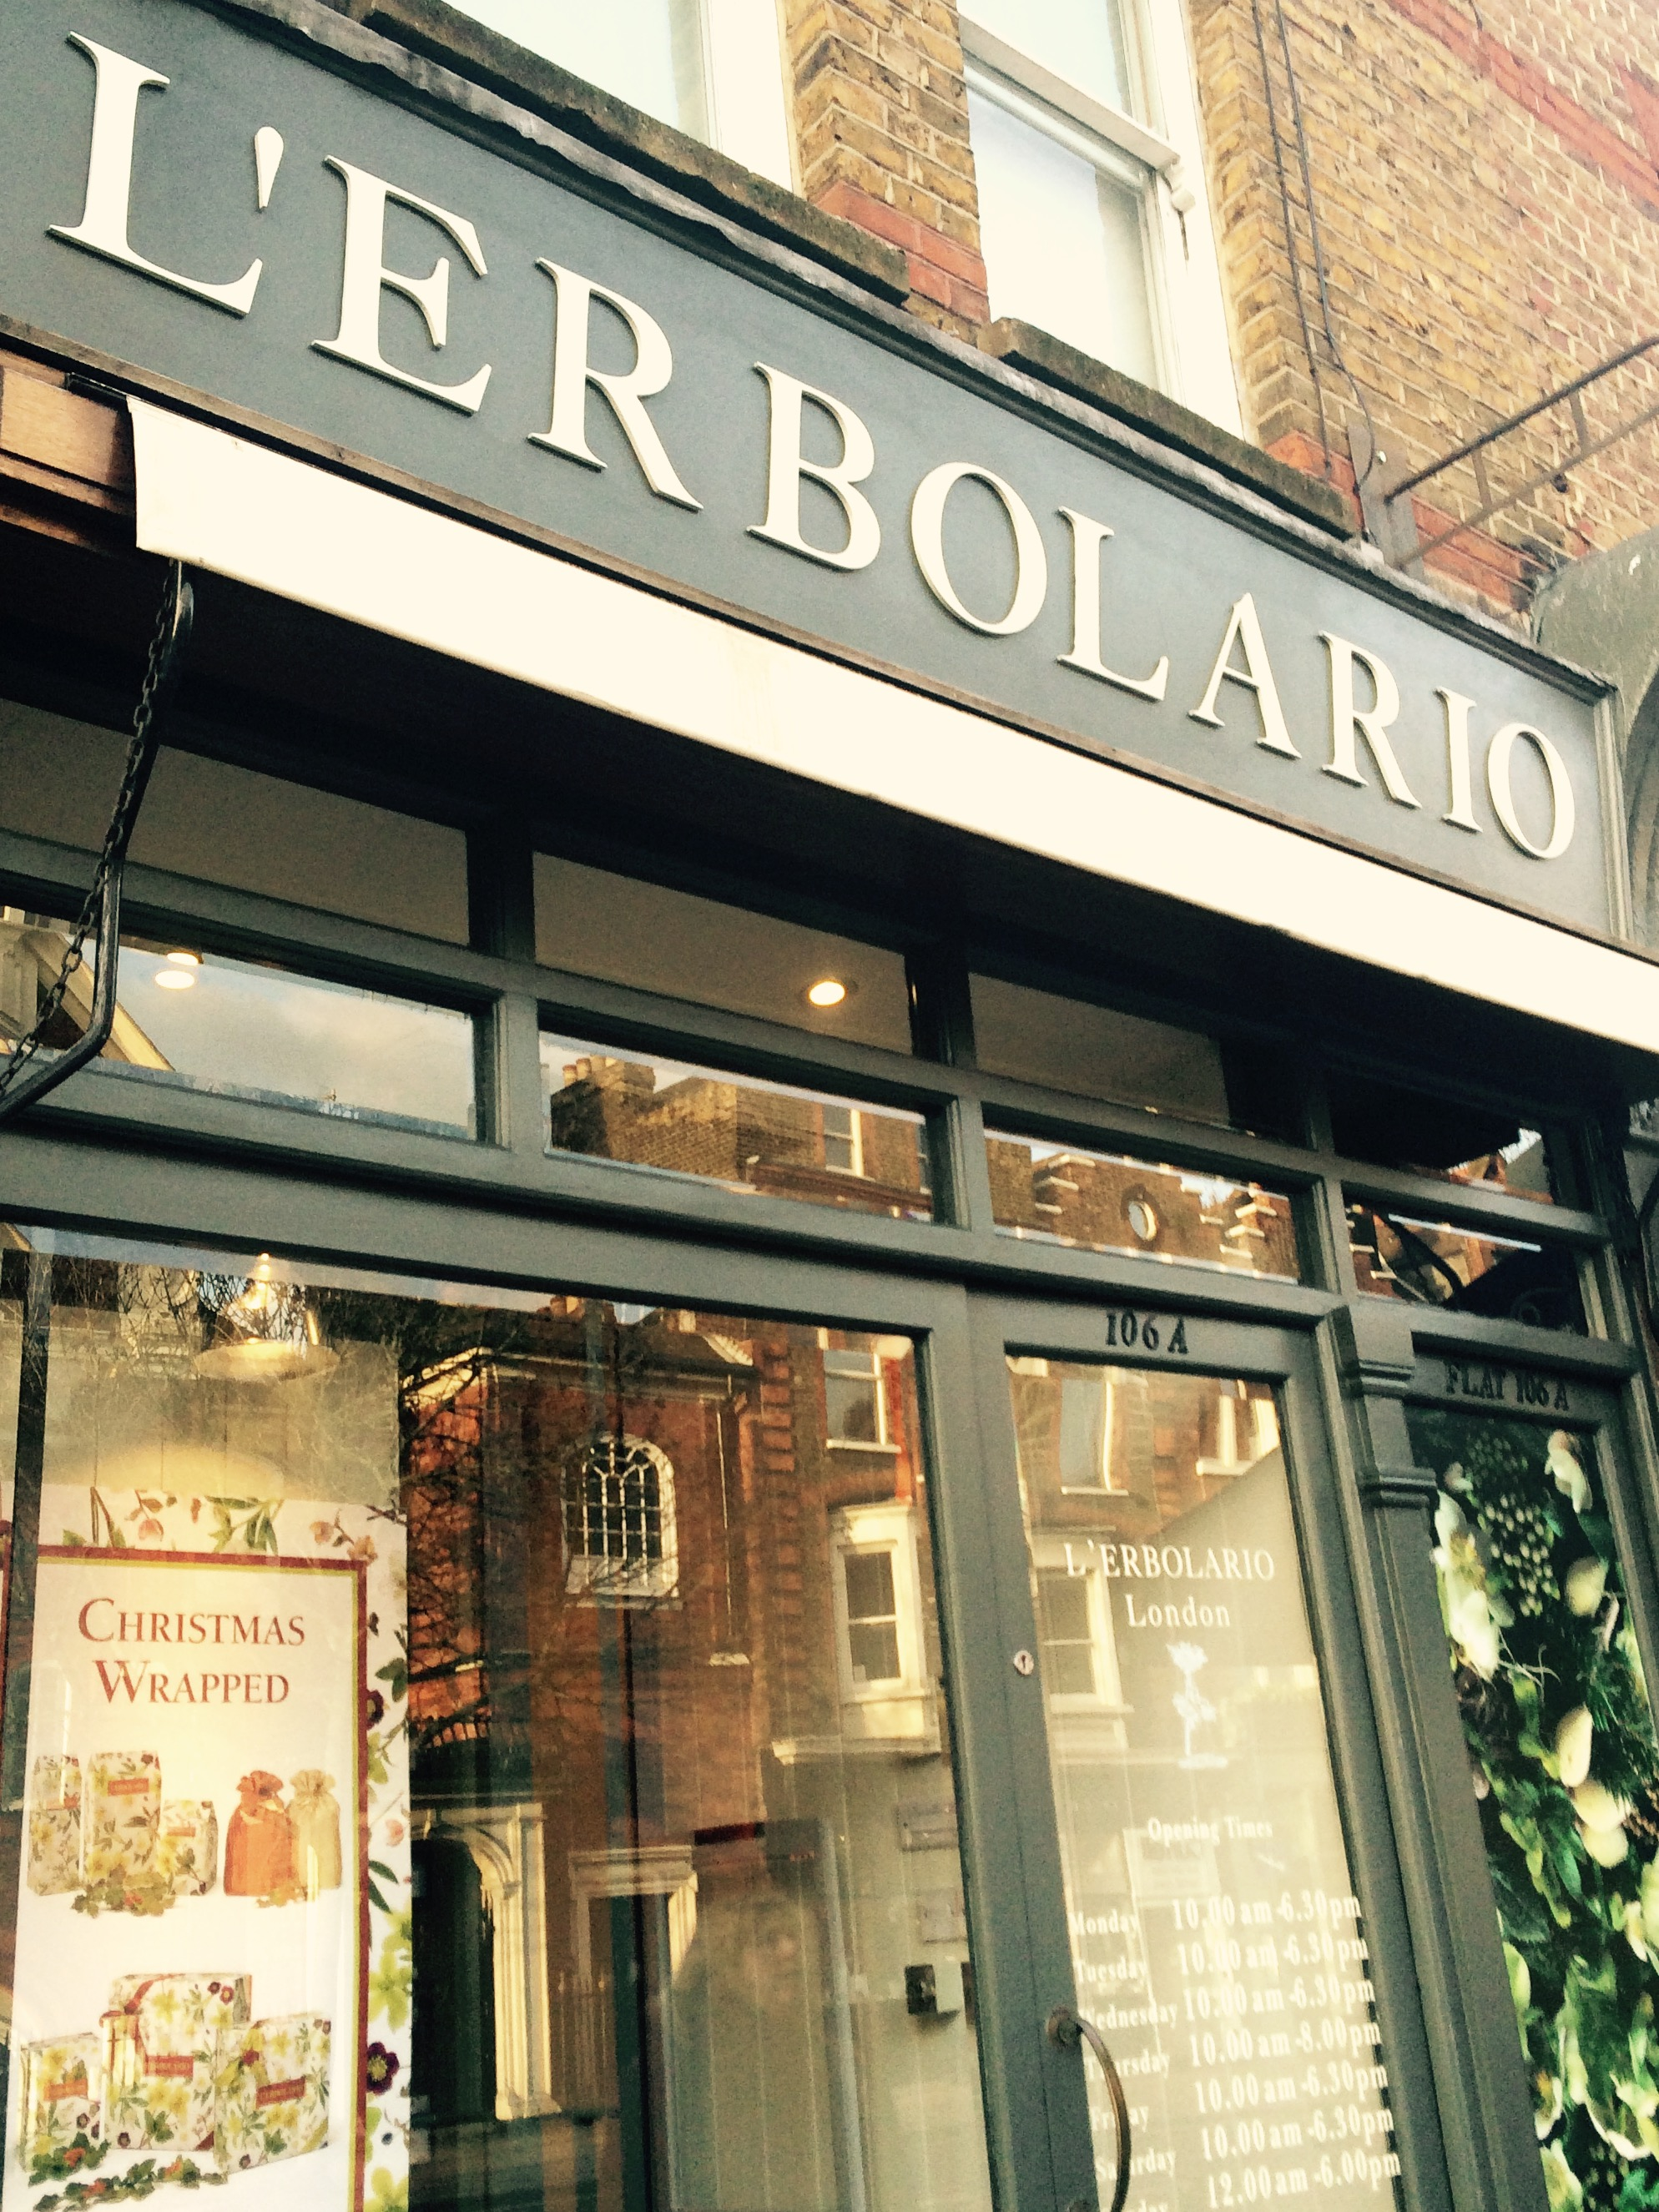 L'Erbolario Launches in UK - Shop front.ju